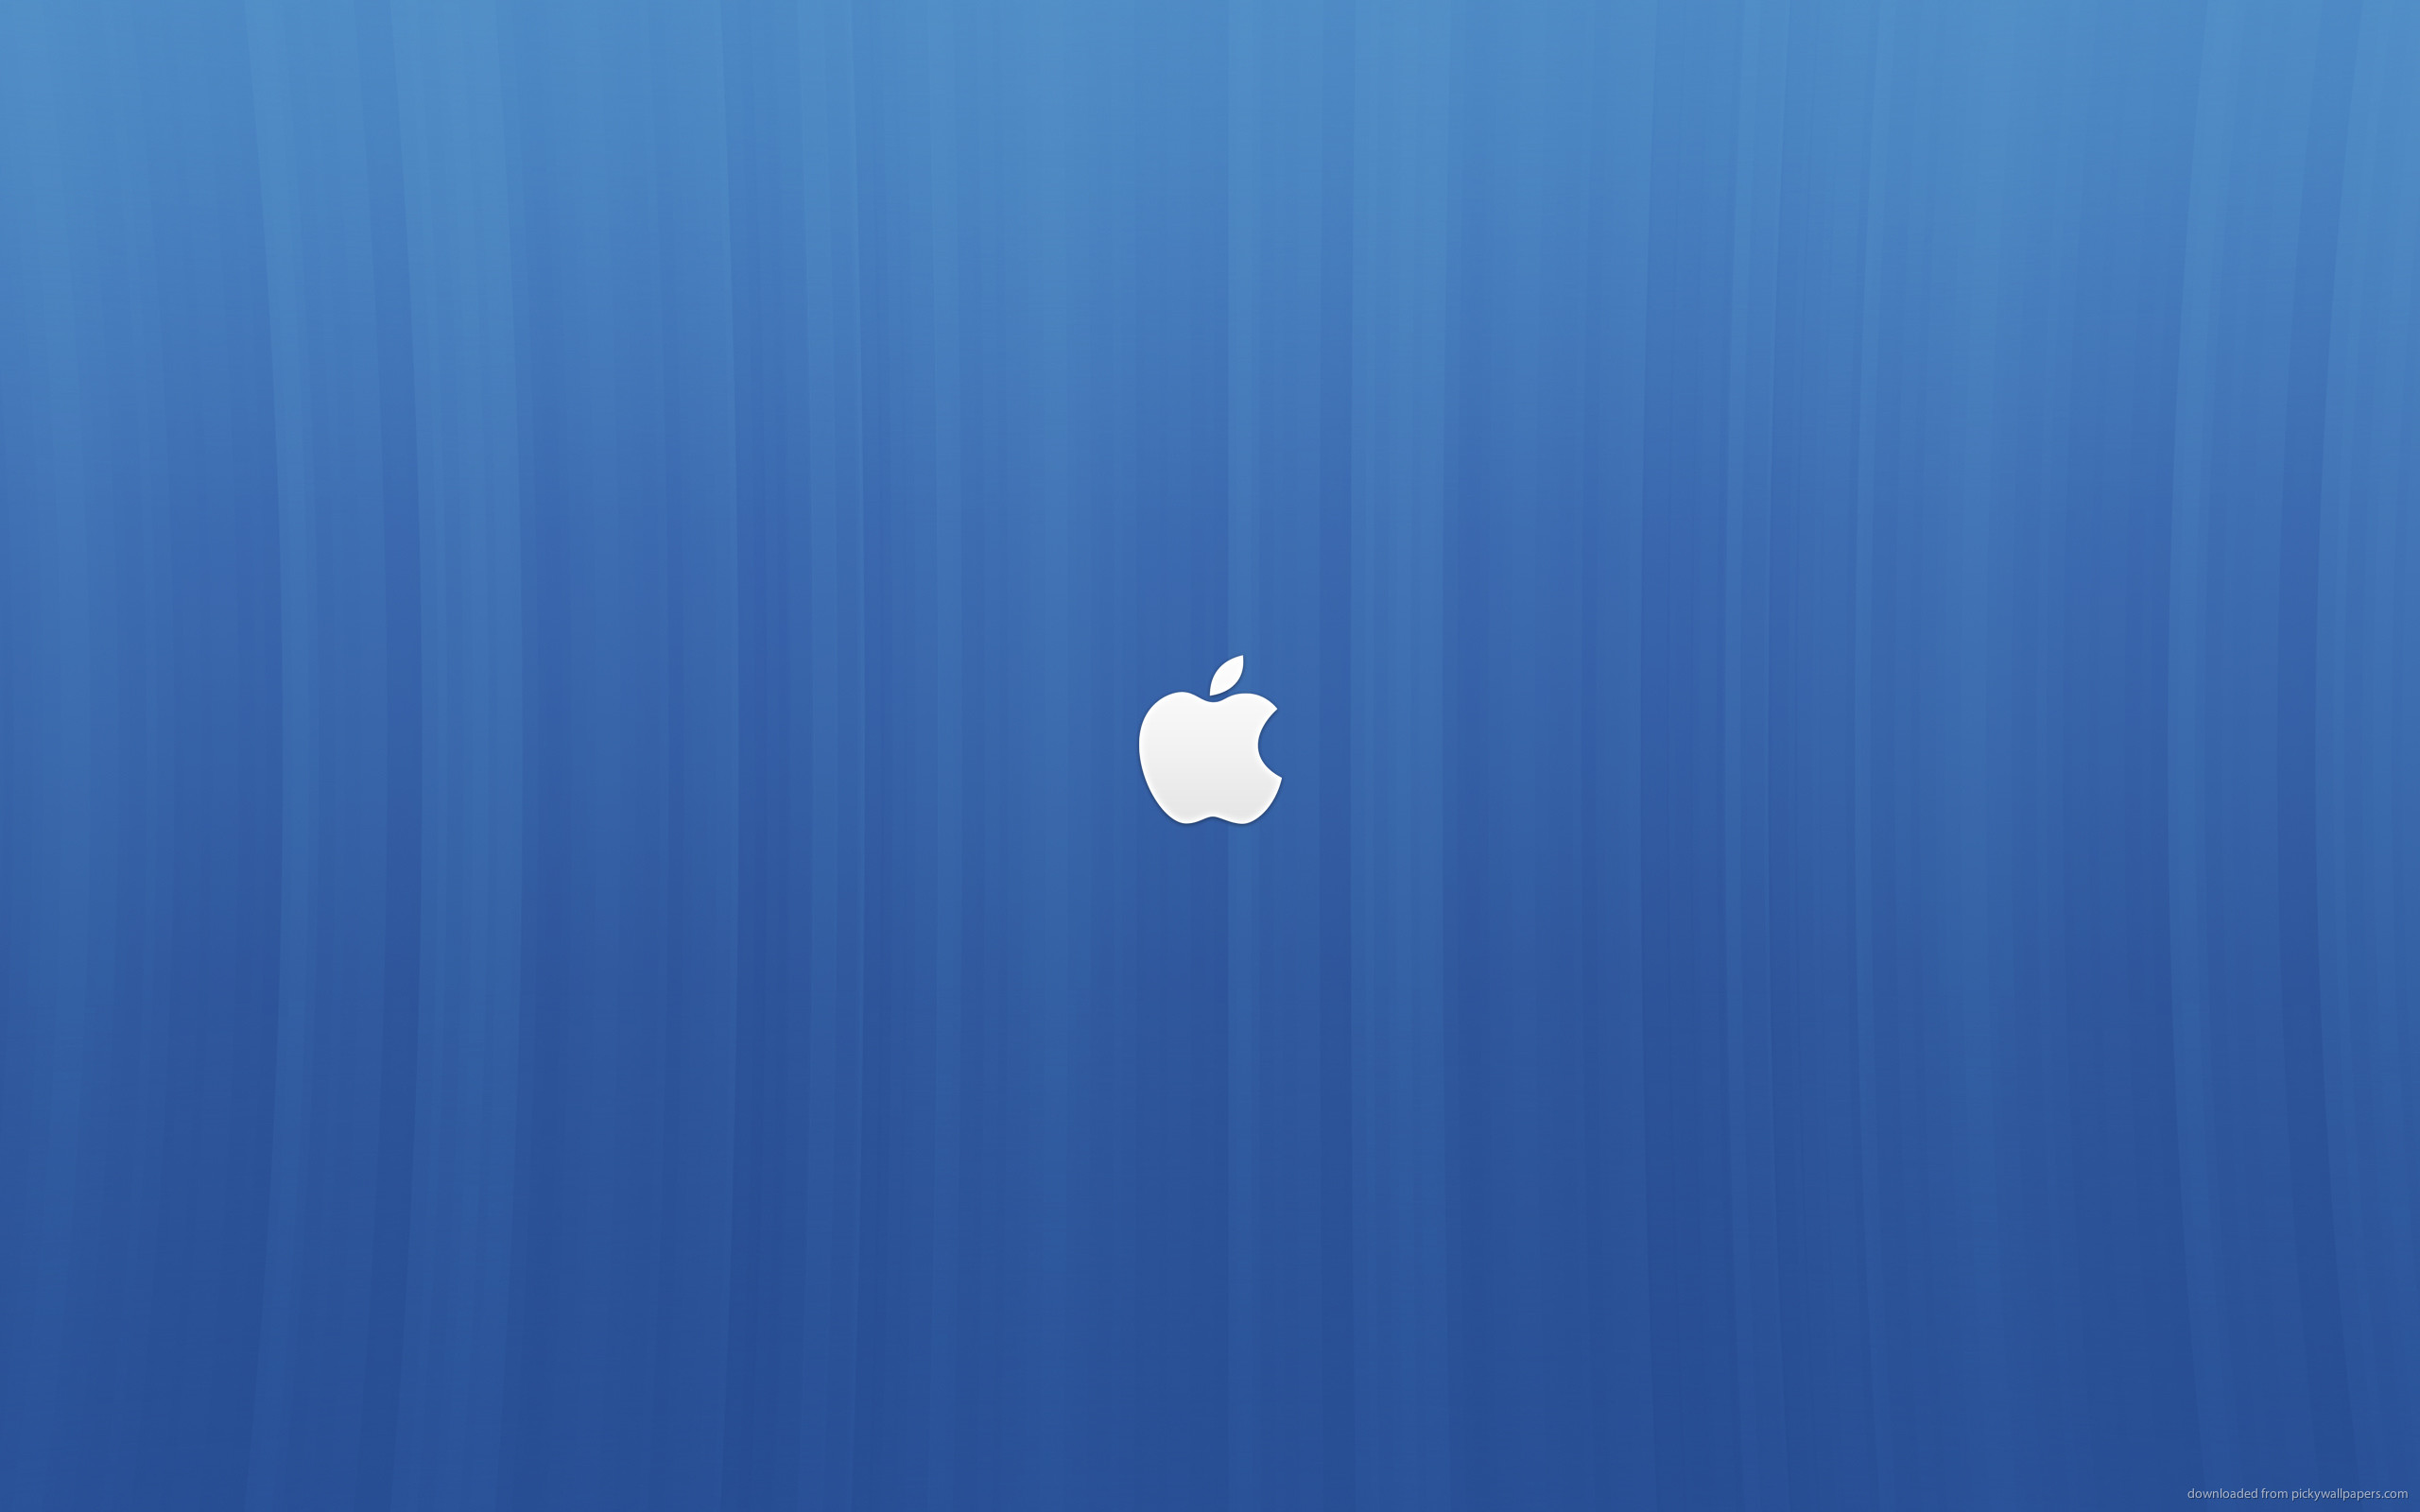 apple background wallpaper ·①